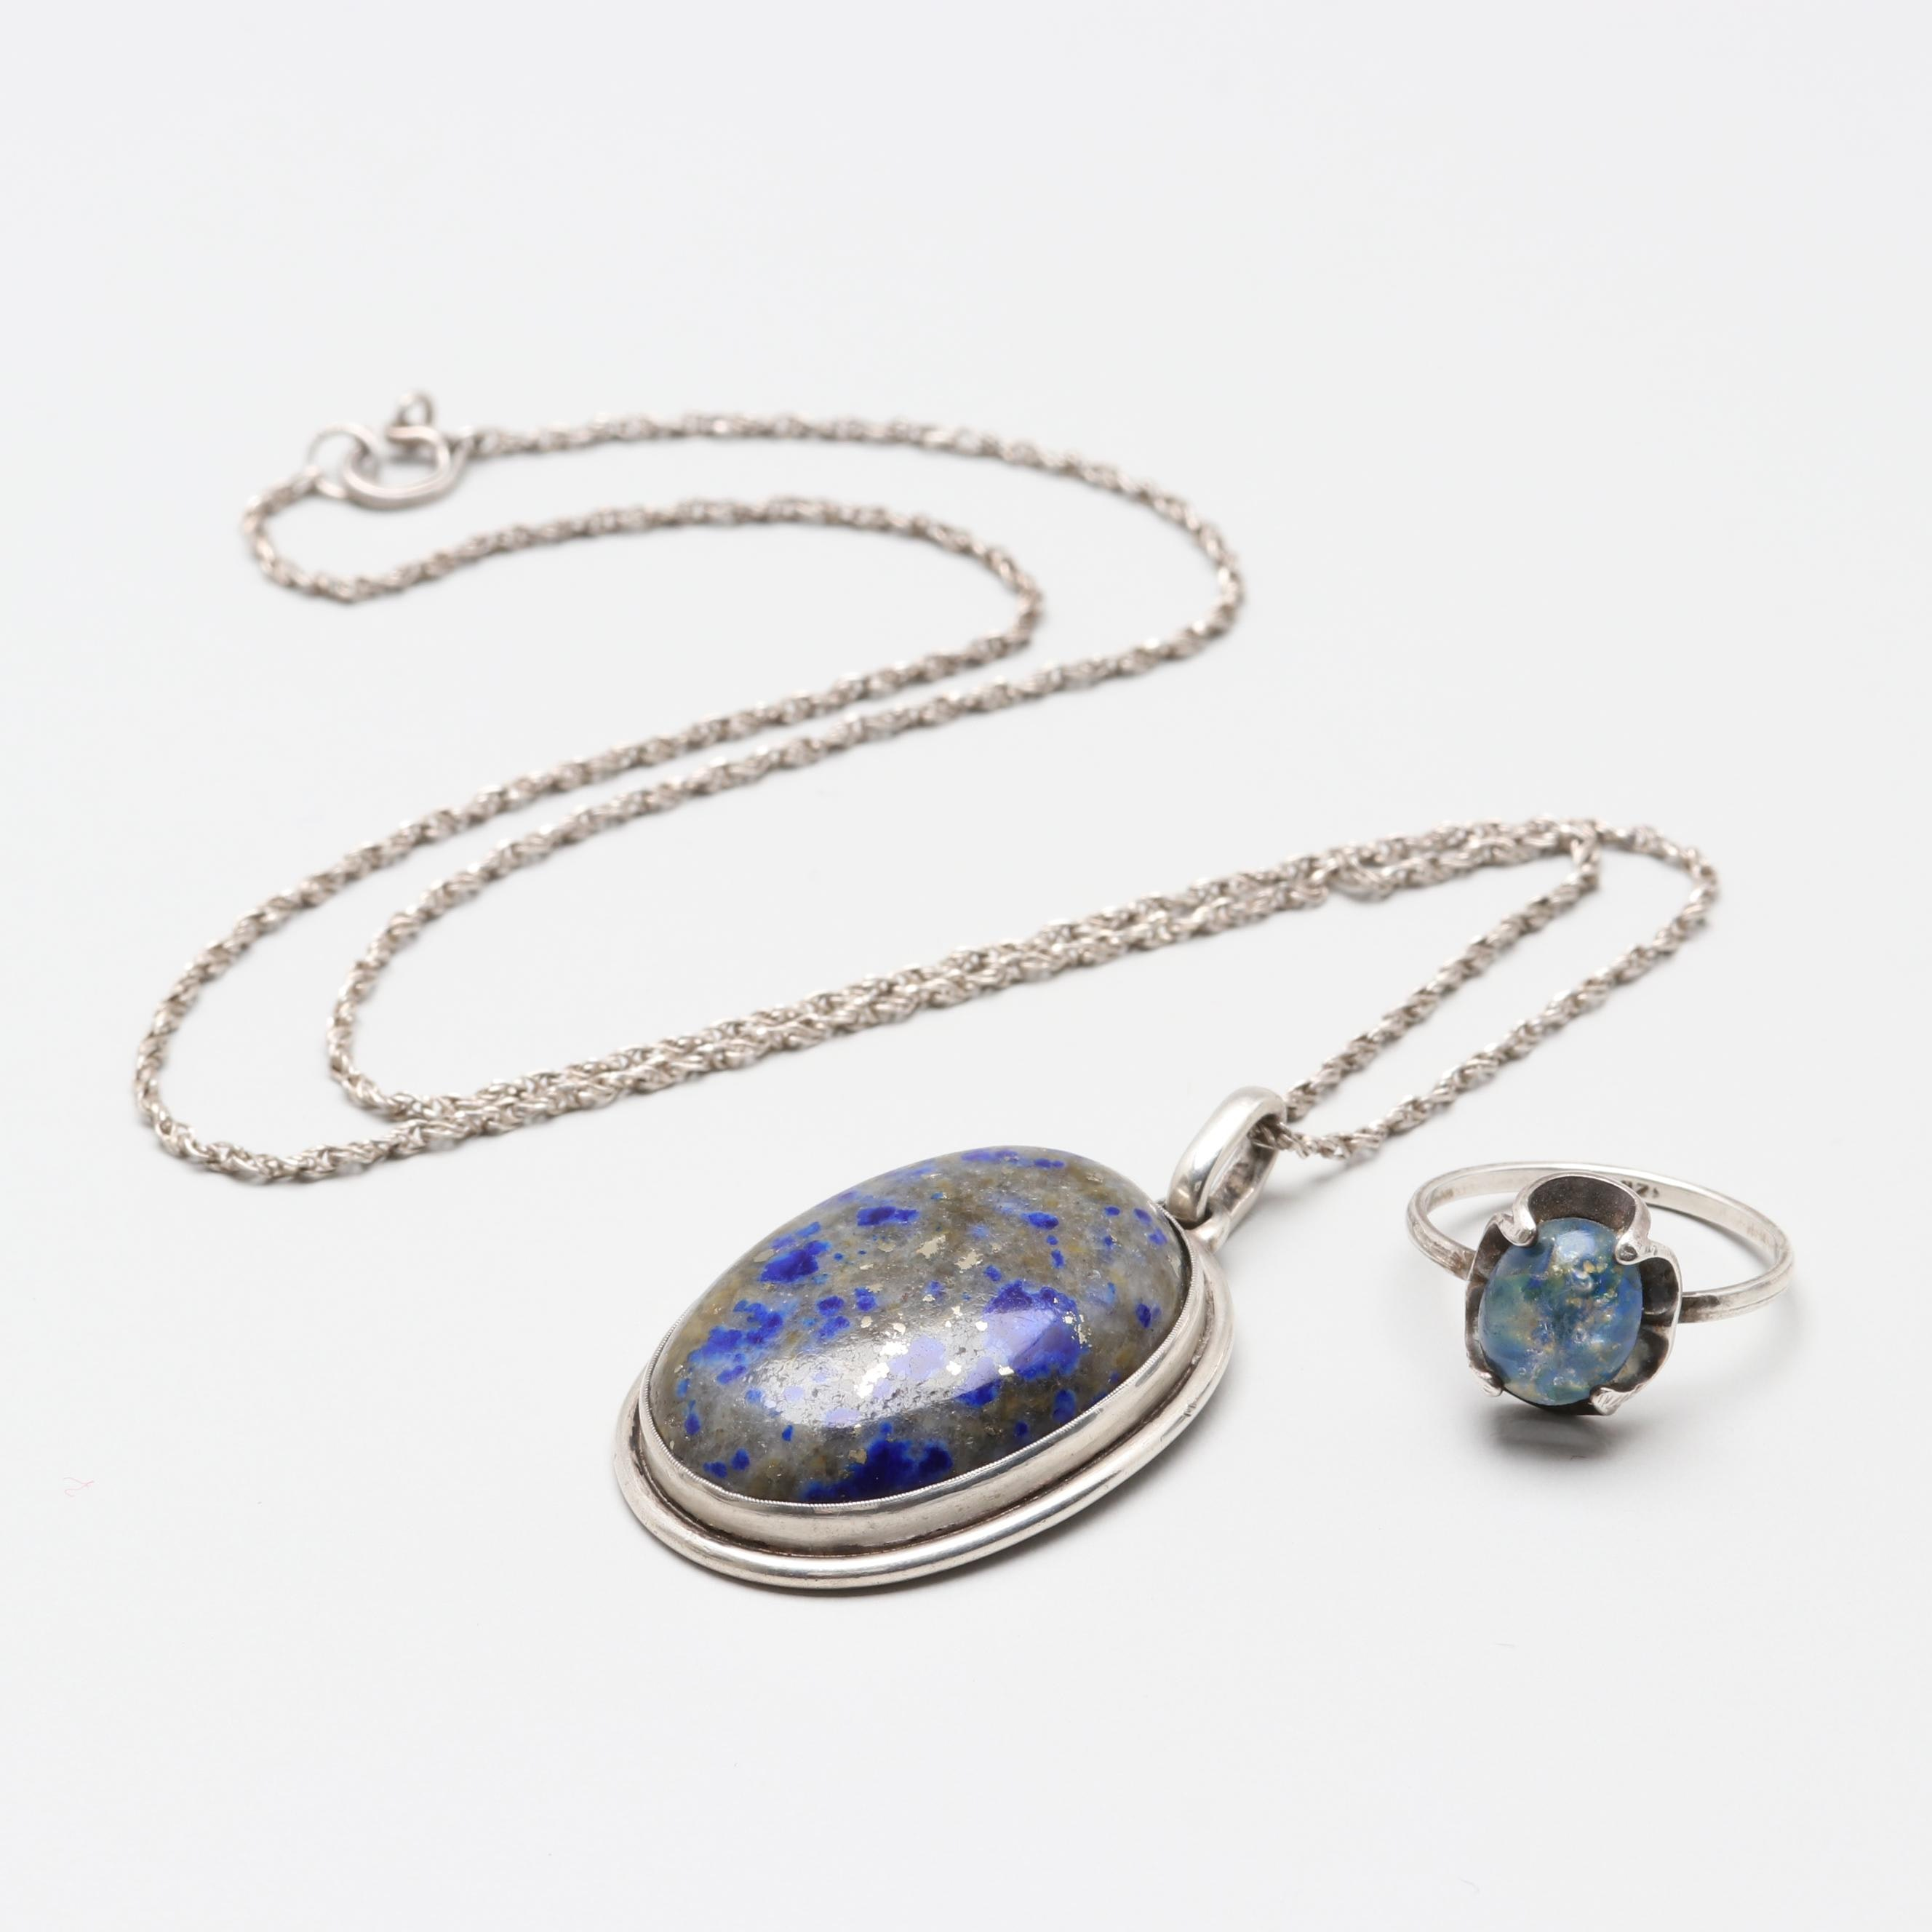 Sterling Silver Ring and Chain Necklace with 835 Silver Lapis Lazuli Pendant